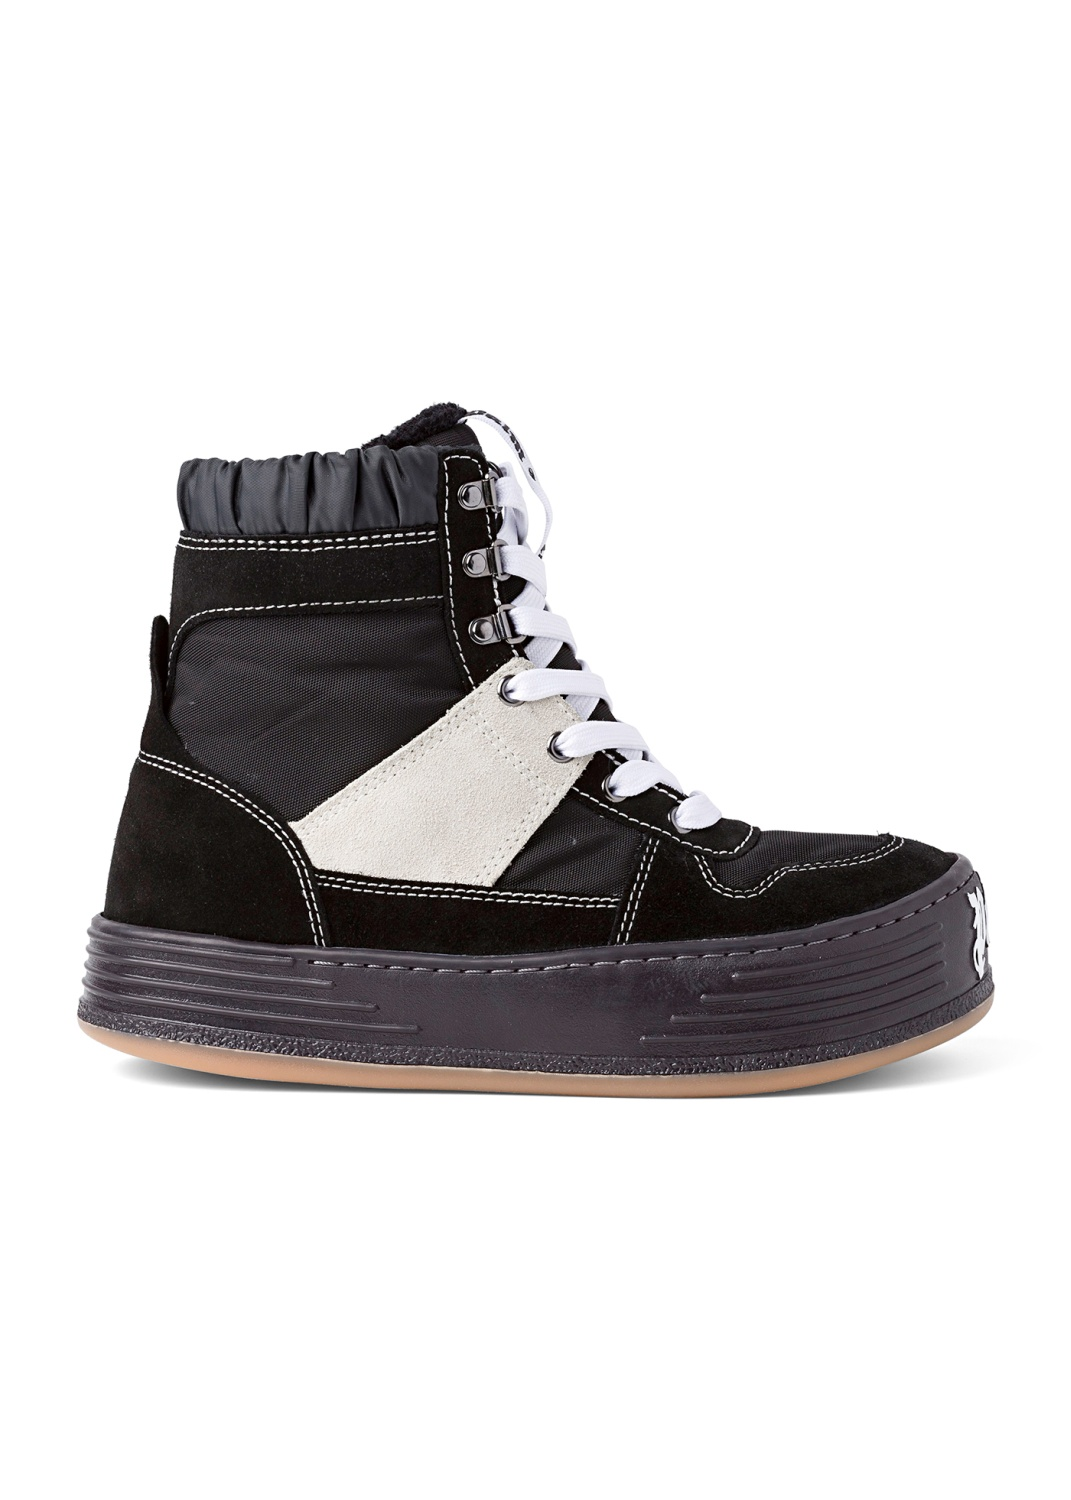 NYLON SUEDE SNOW HIGH TOP  BLACK WHITE image number 0